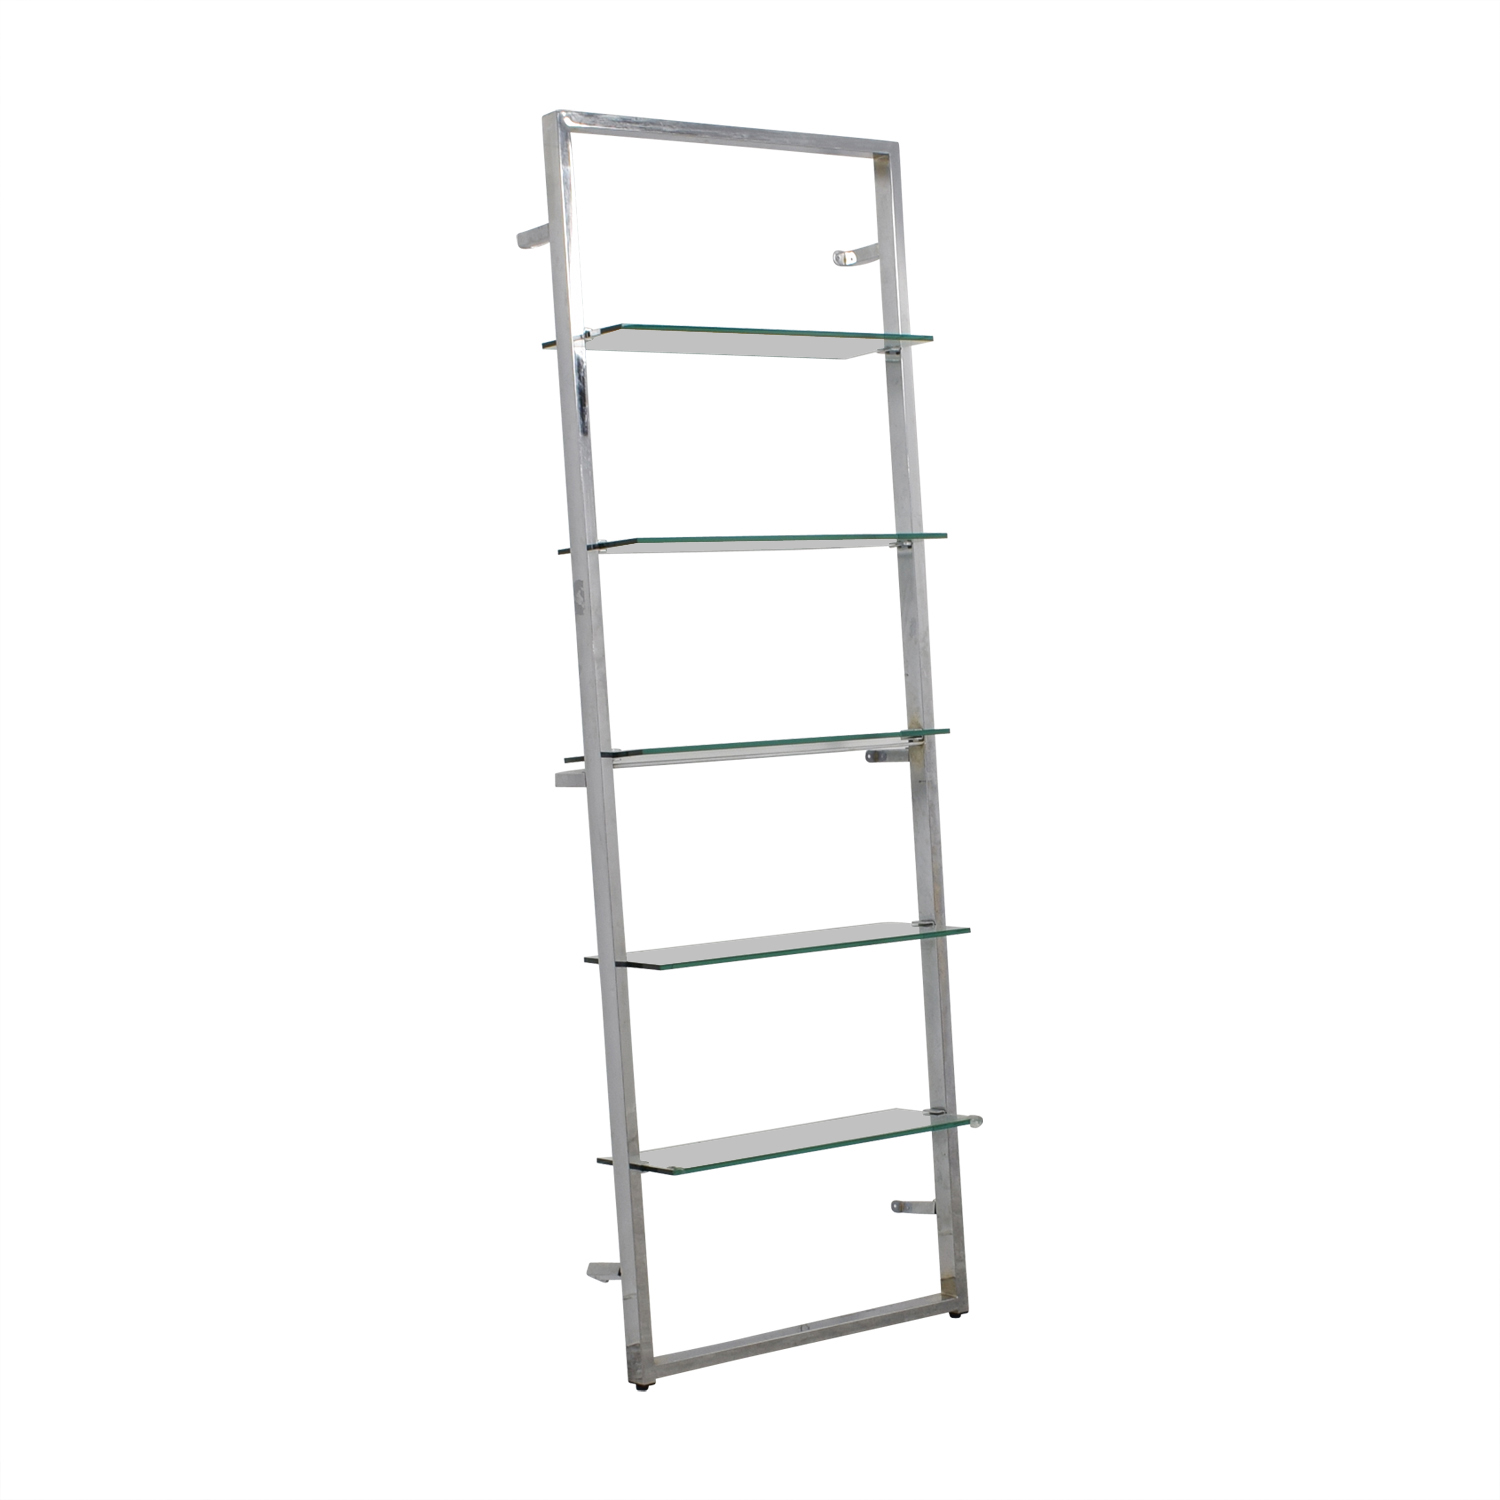 79 Off Cb2 Cb2 Tesso Chrome And Glass Wall Mounted Bookcase Storage